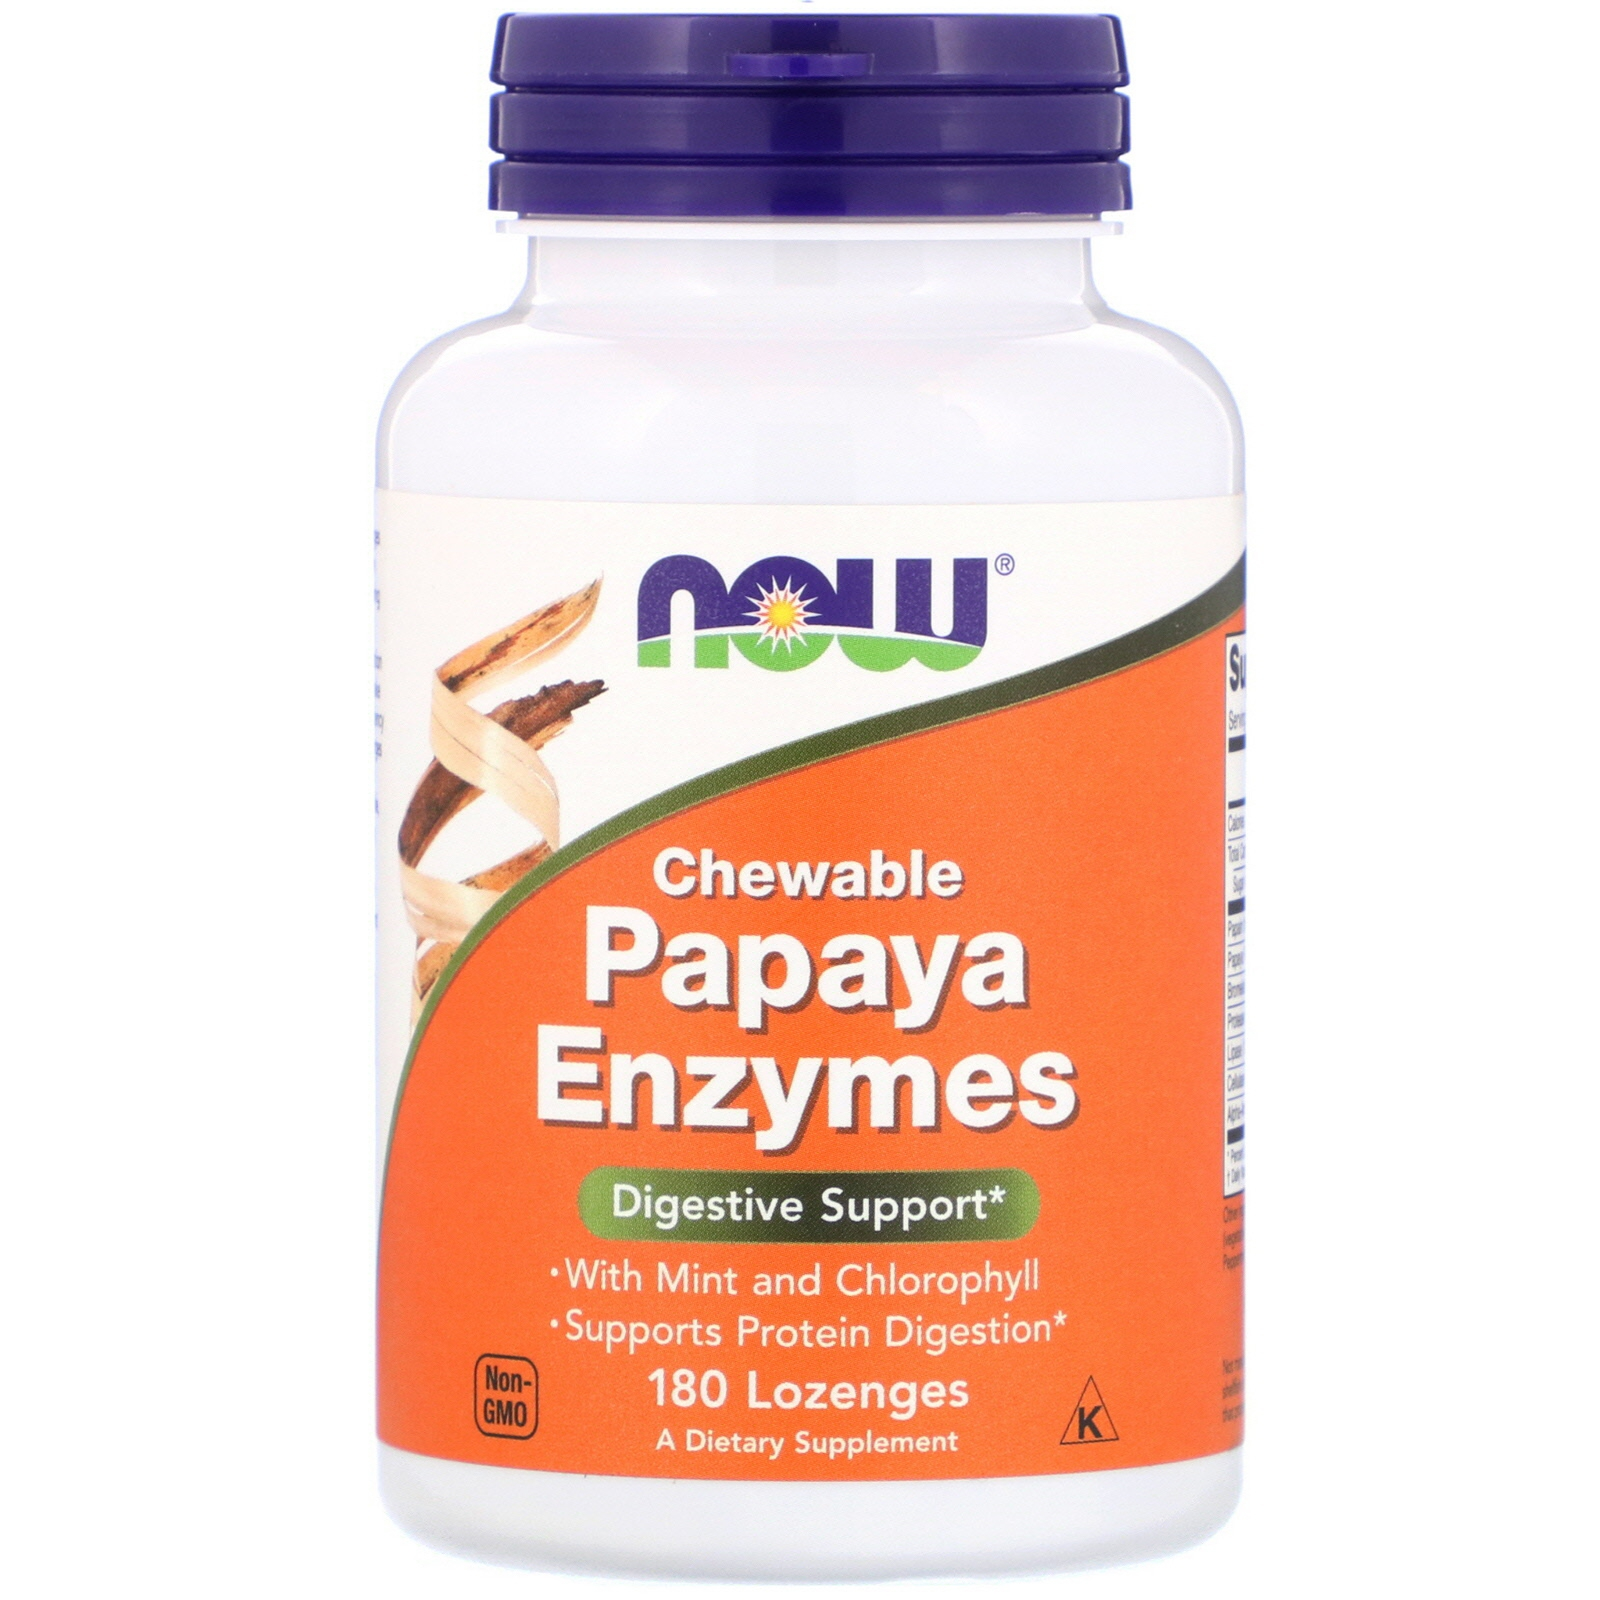 Image of Chewable Papaya Enzymes (180 lozenges) - Now Foods 0733739029706